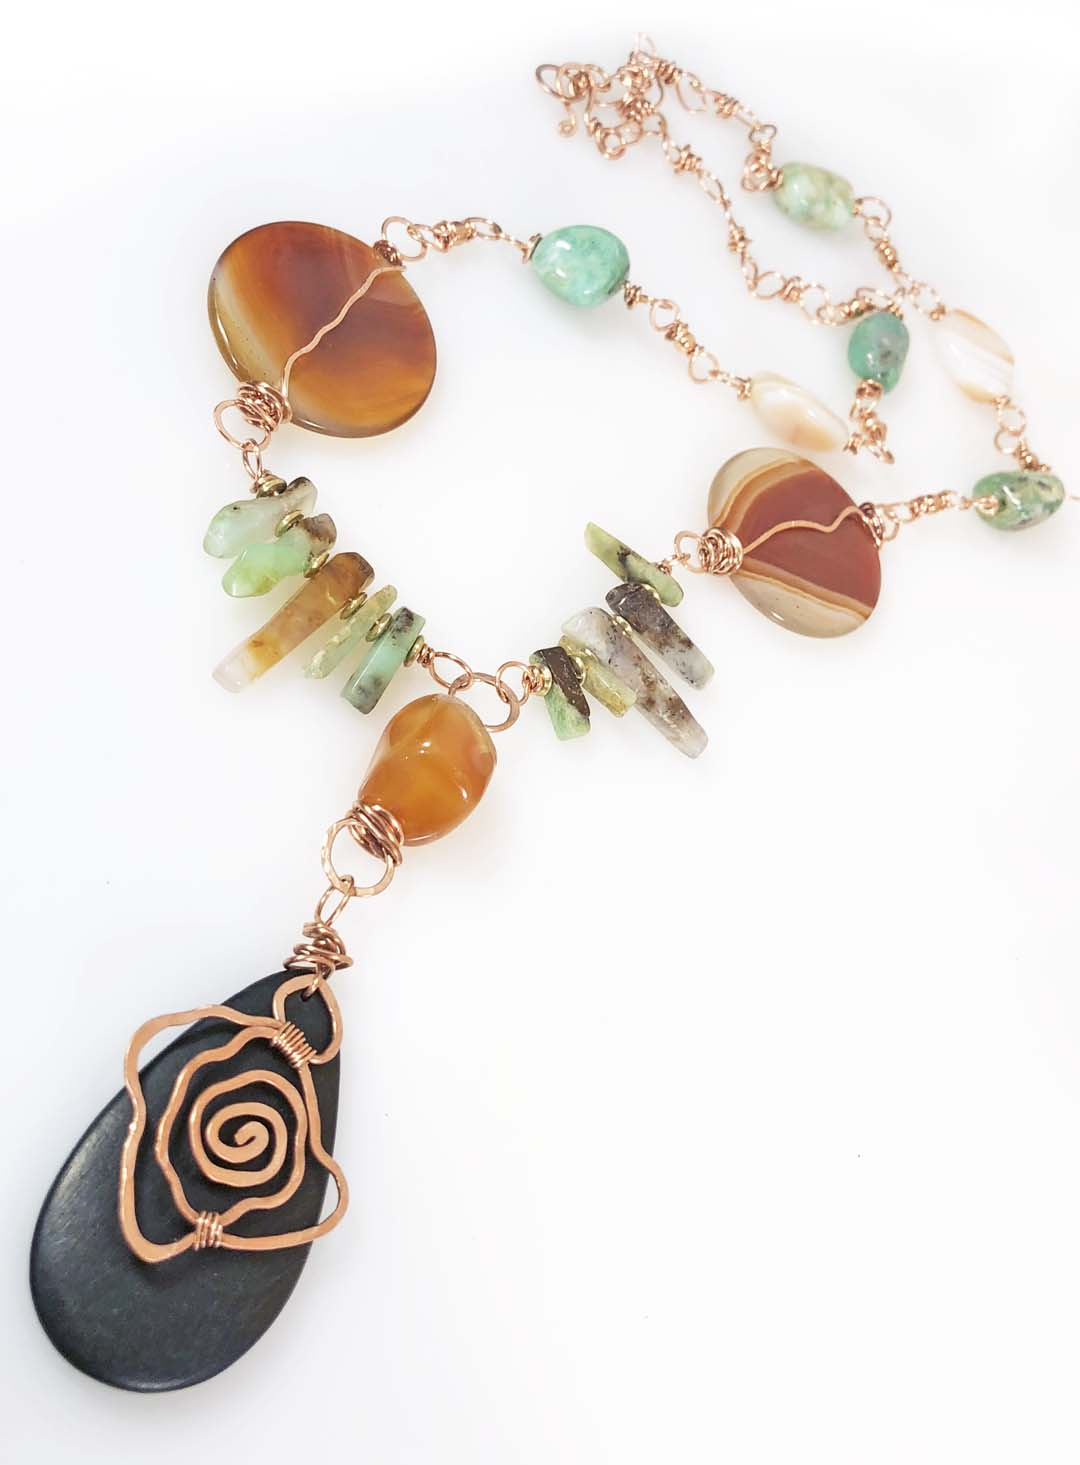 A New Day Agate Chrysoprase Necklace